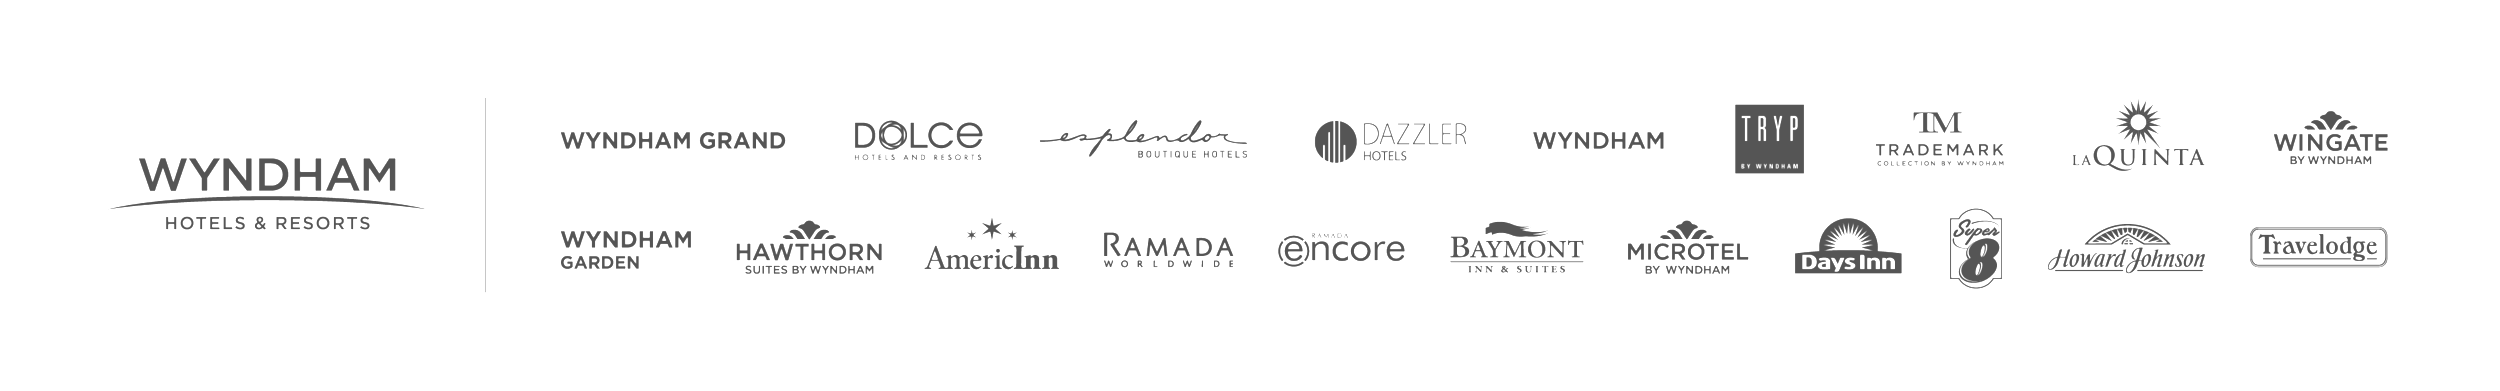 WHR_hotel_brands_2row_left_RGB_intl_solid.png